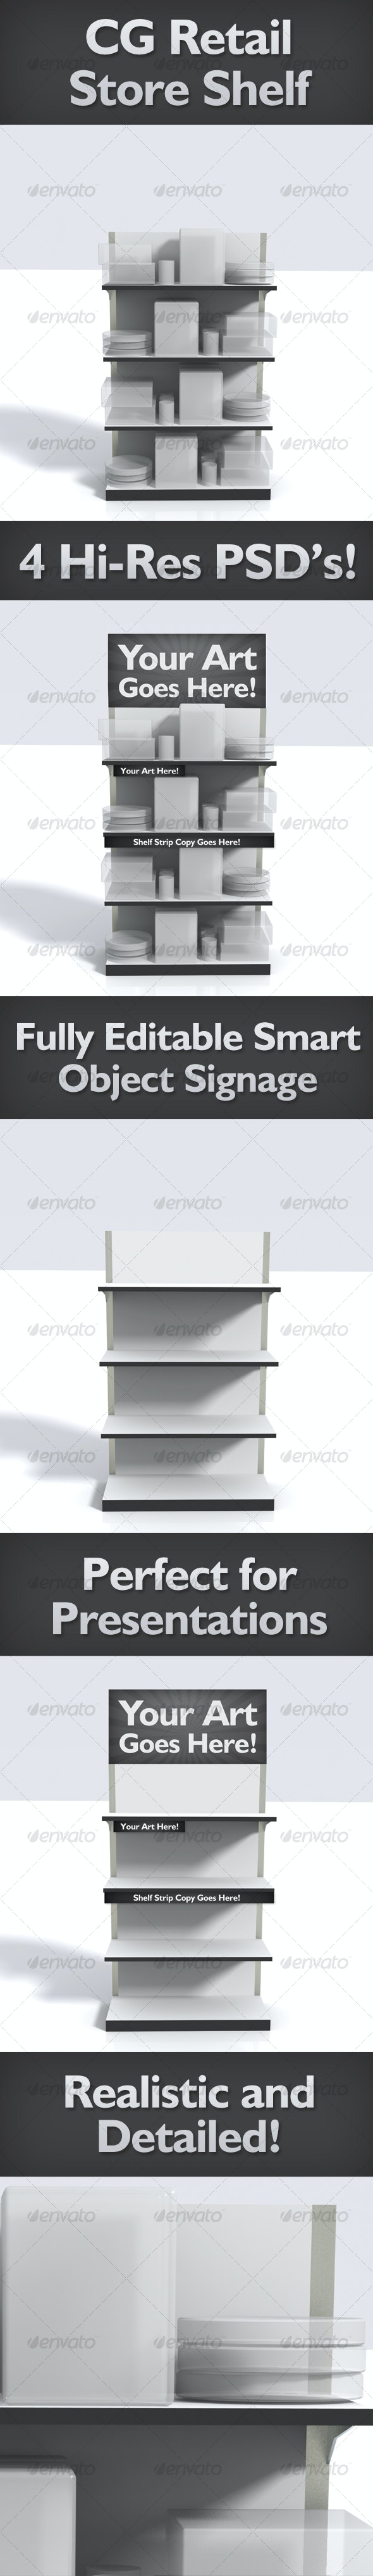 Realistic CG Retail Shelves - Product/Signage - Objects 3D Renders